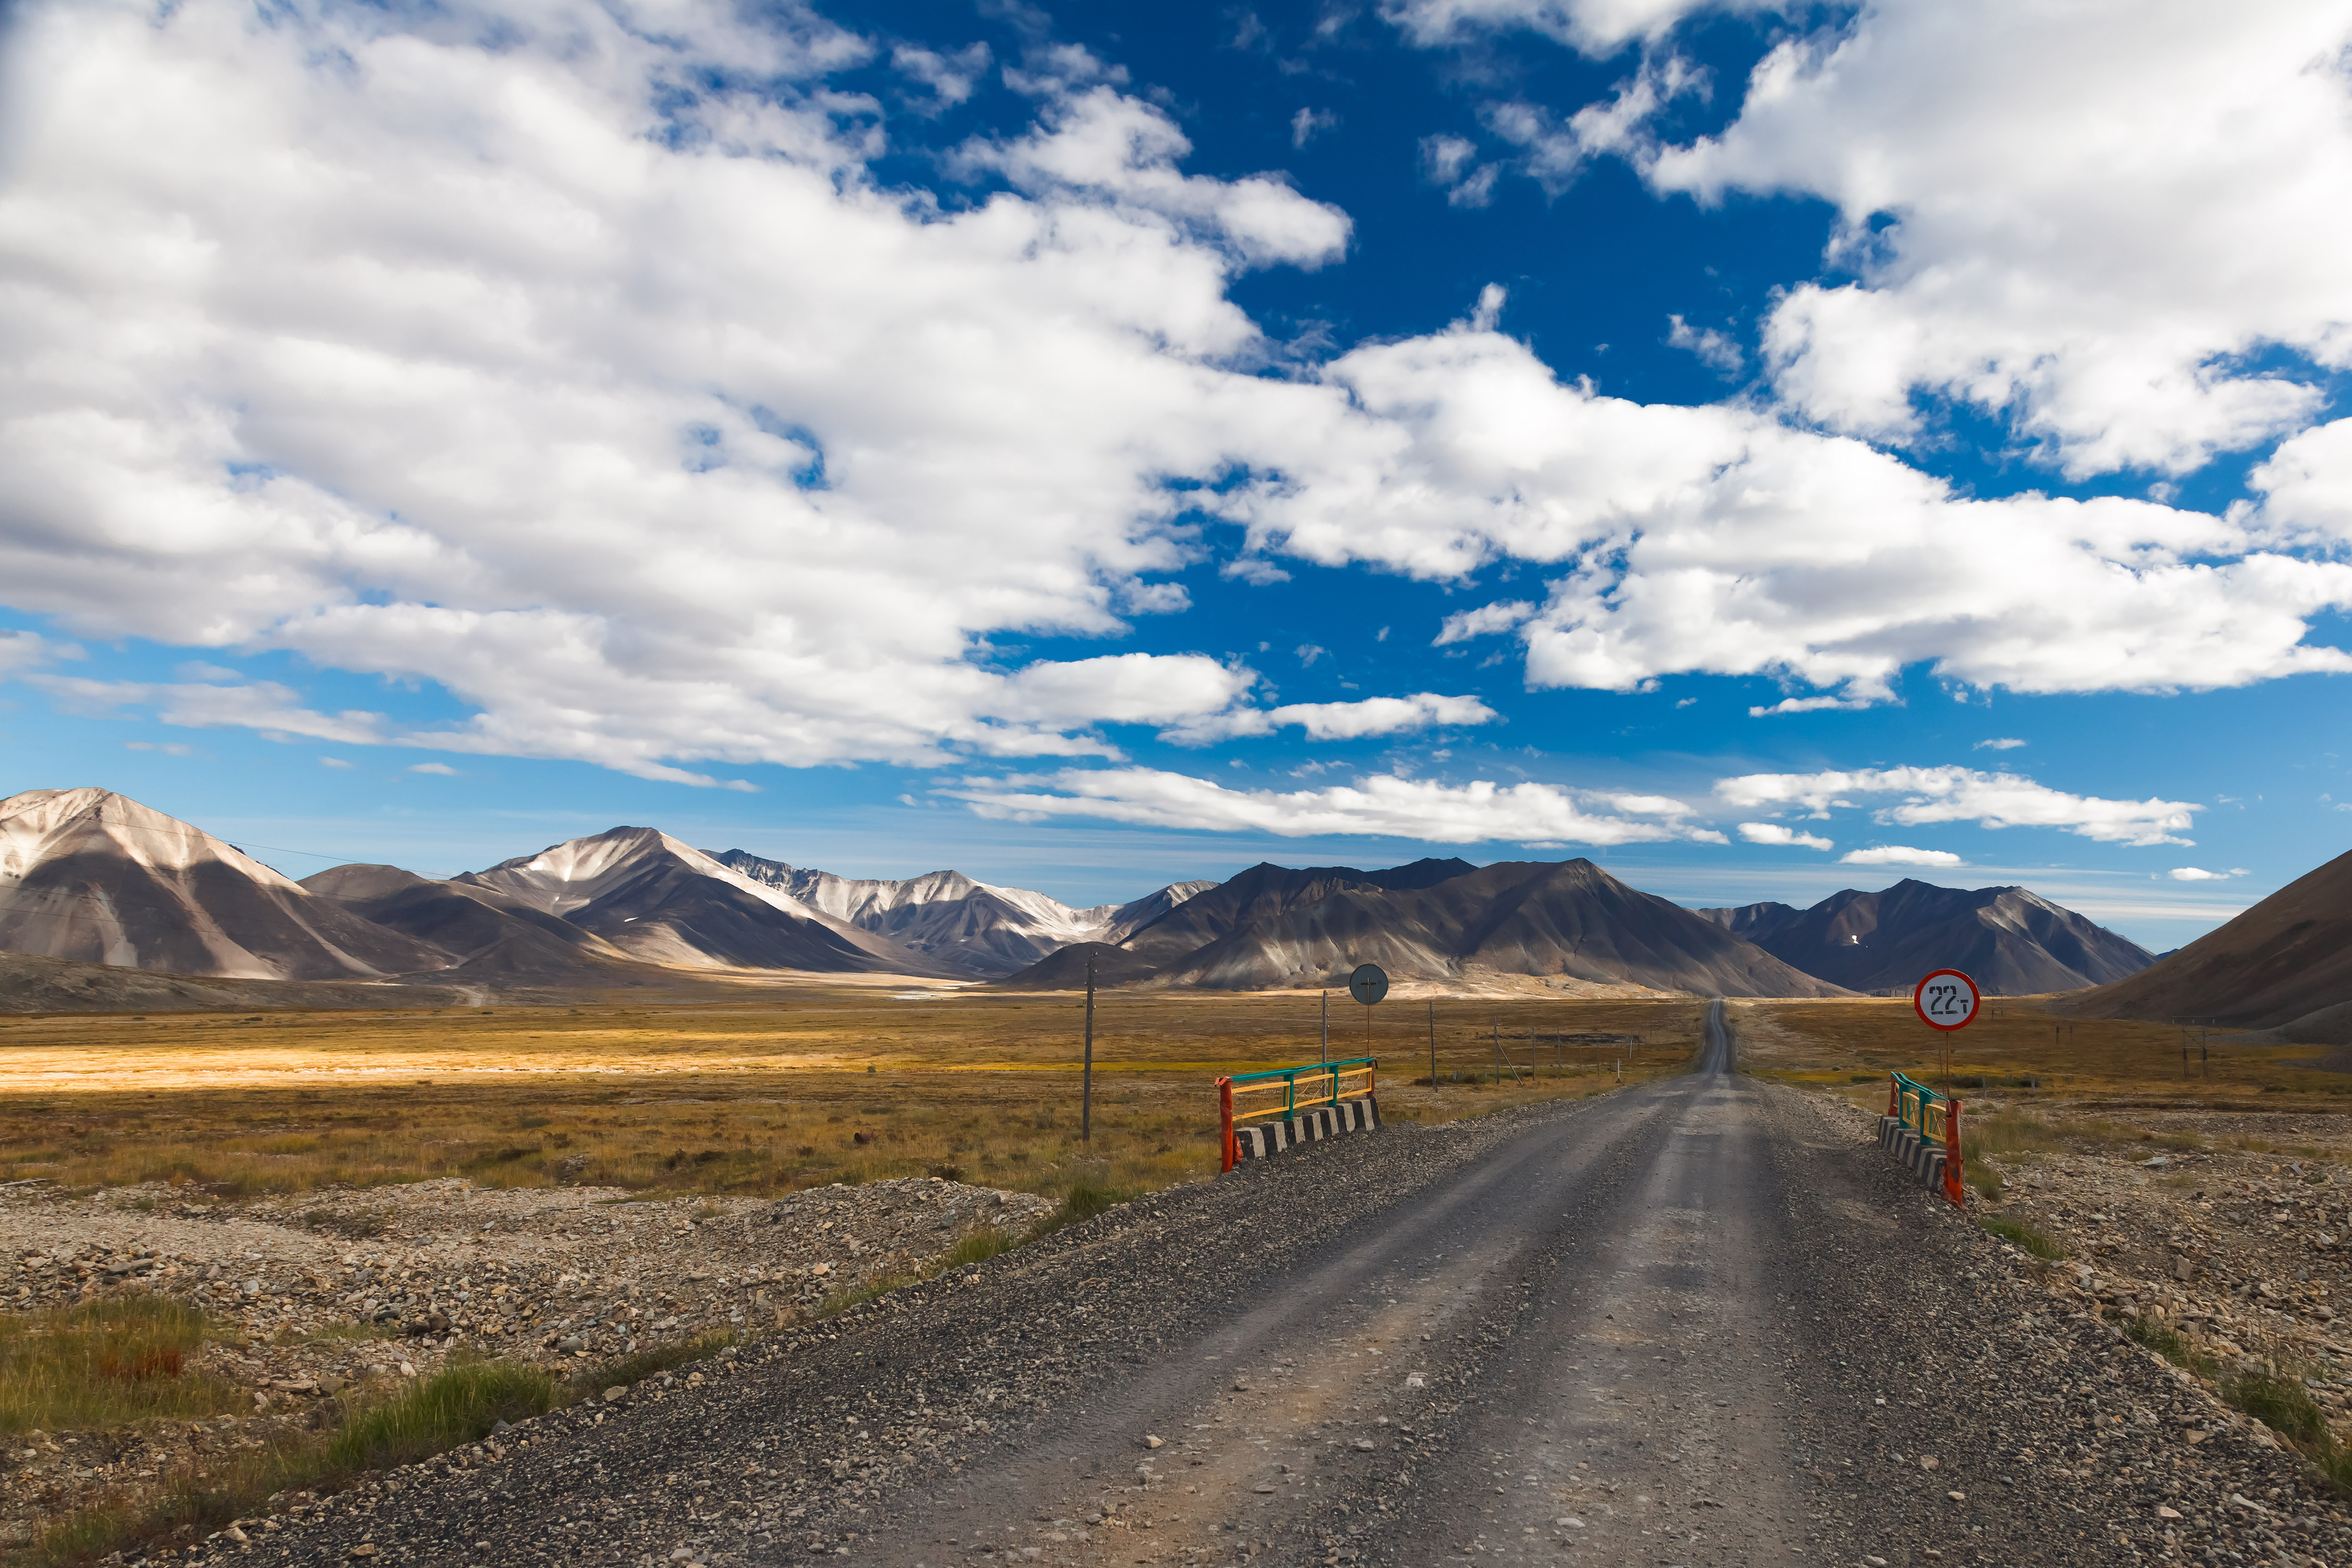 Causeway crossing Chukotka from the Barents Sea to the Arctic Ocean.